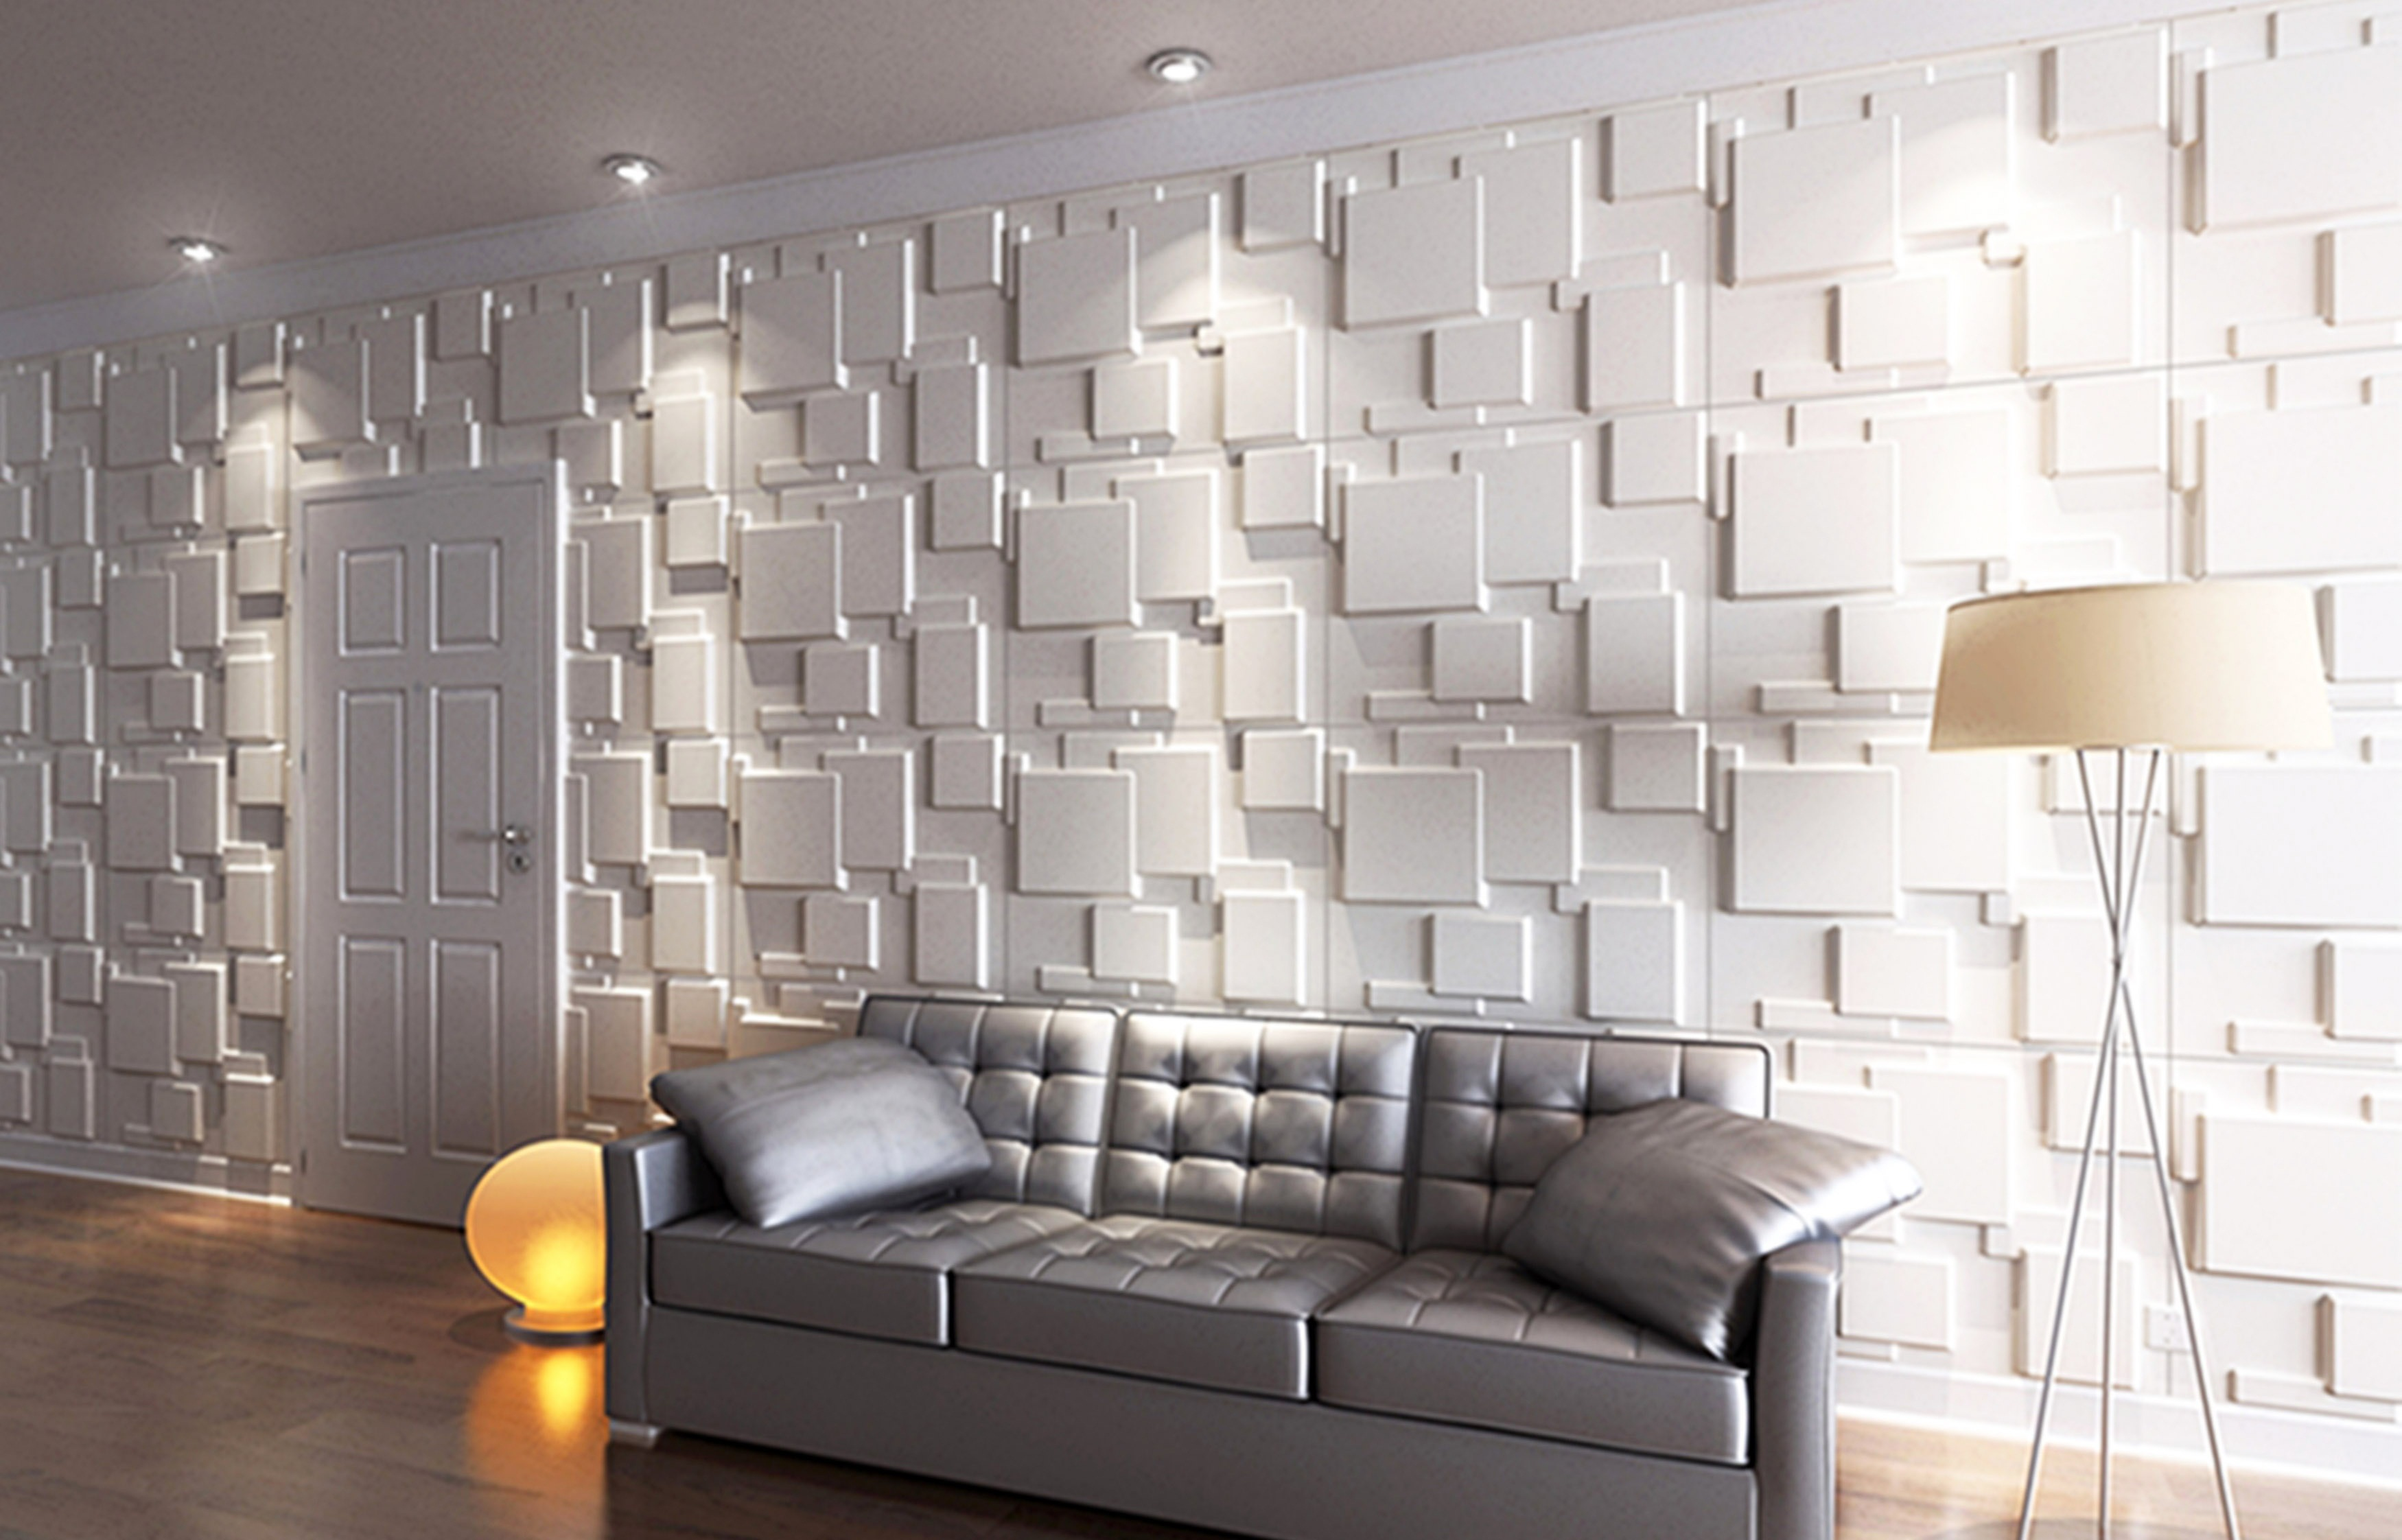 Wall covering ideas for a new home decoration roy home for Wall cladding designs living room